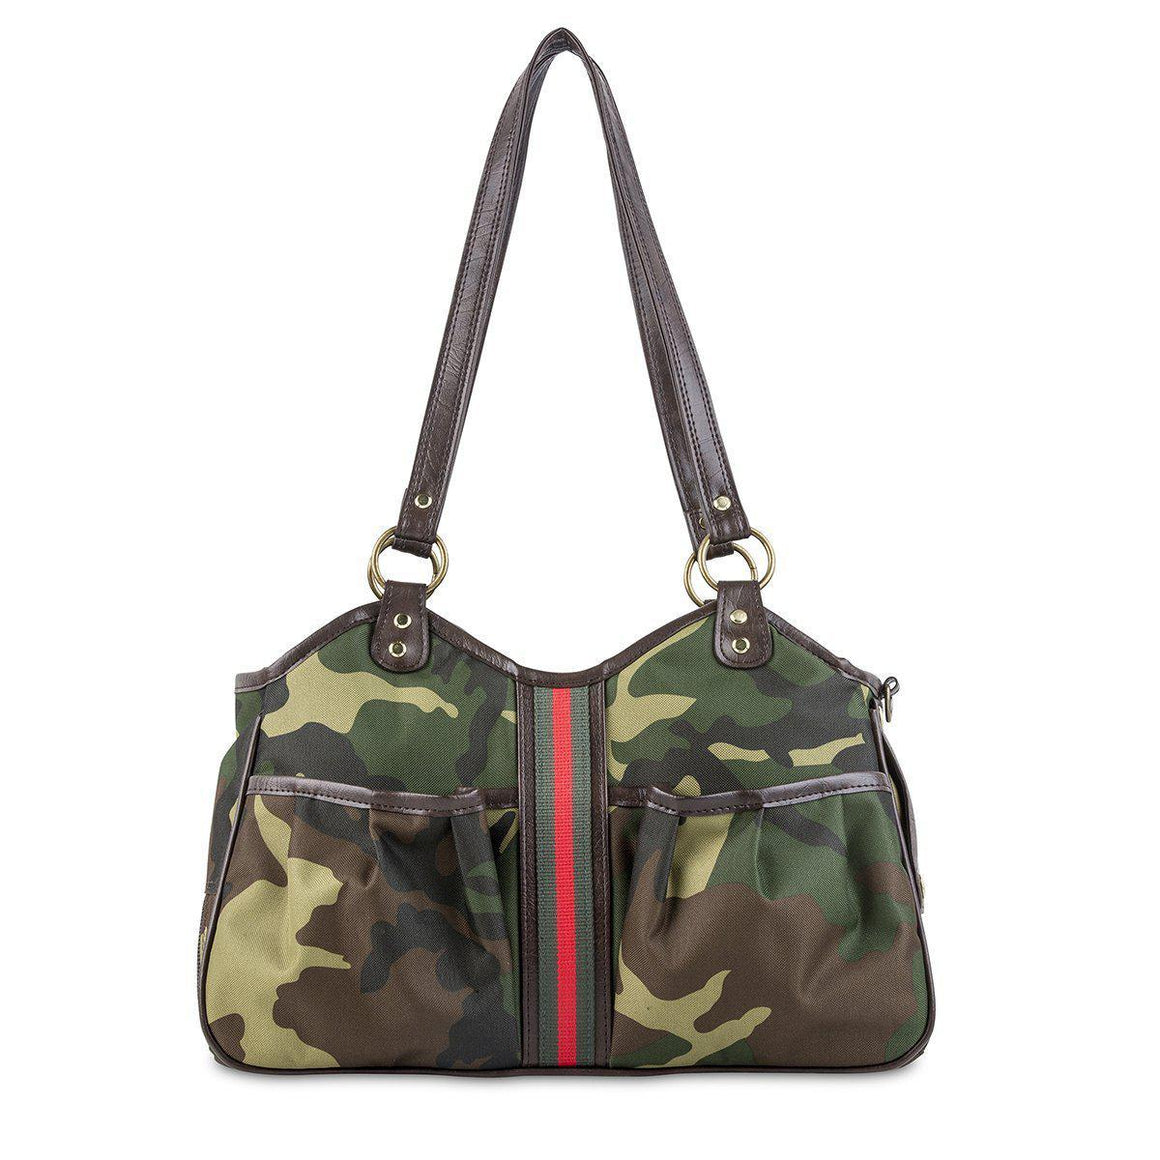 Petote Metro Bag Couture Collection - Camo with Stripe